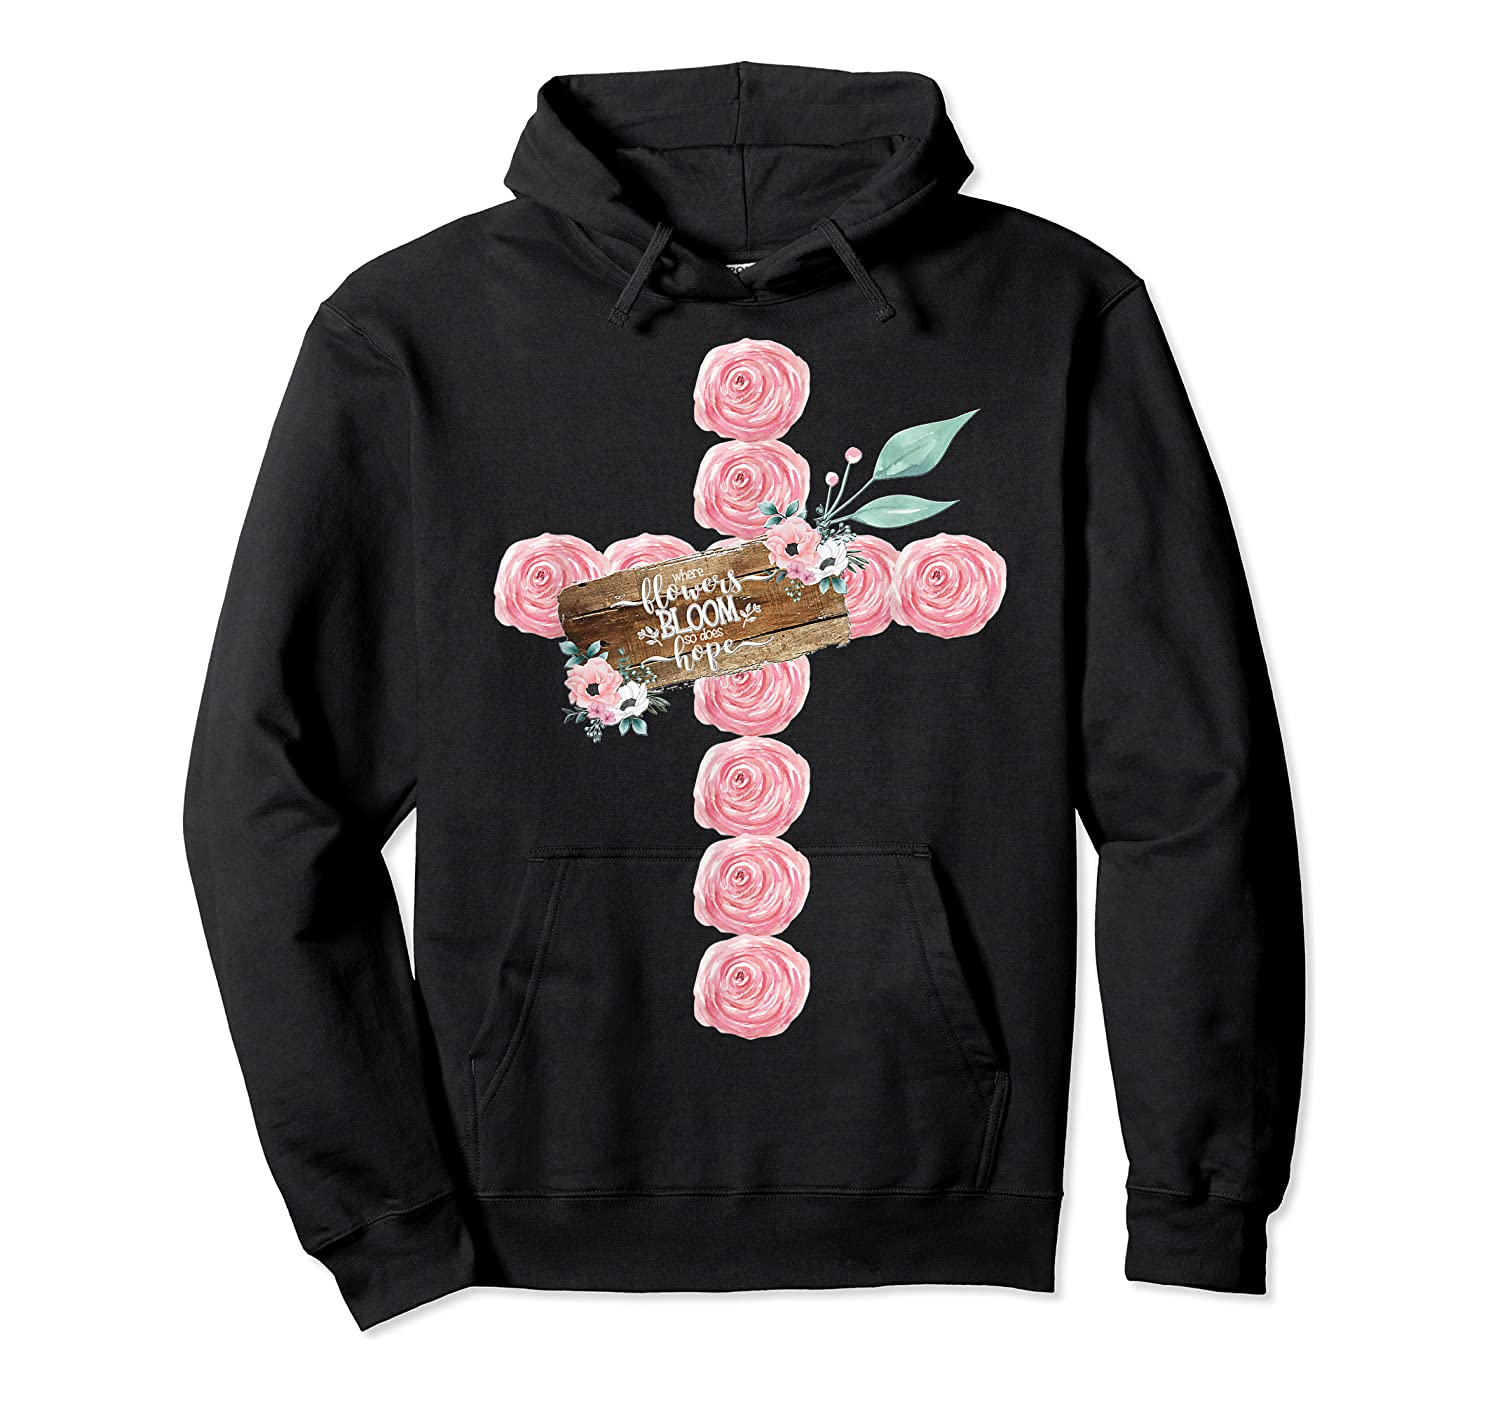 Where Flowers Bloom So Does Hope Floral Christian Cross Shirts Unisex Pullover Hoodie